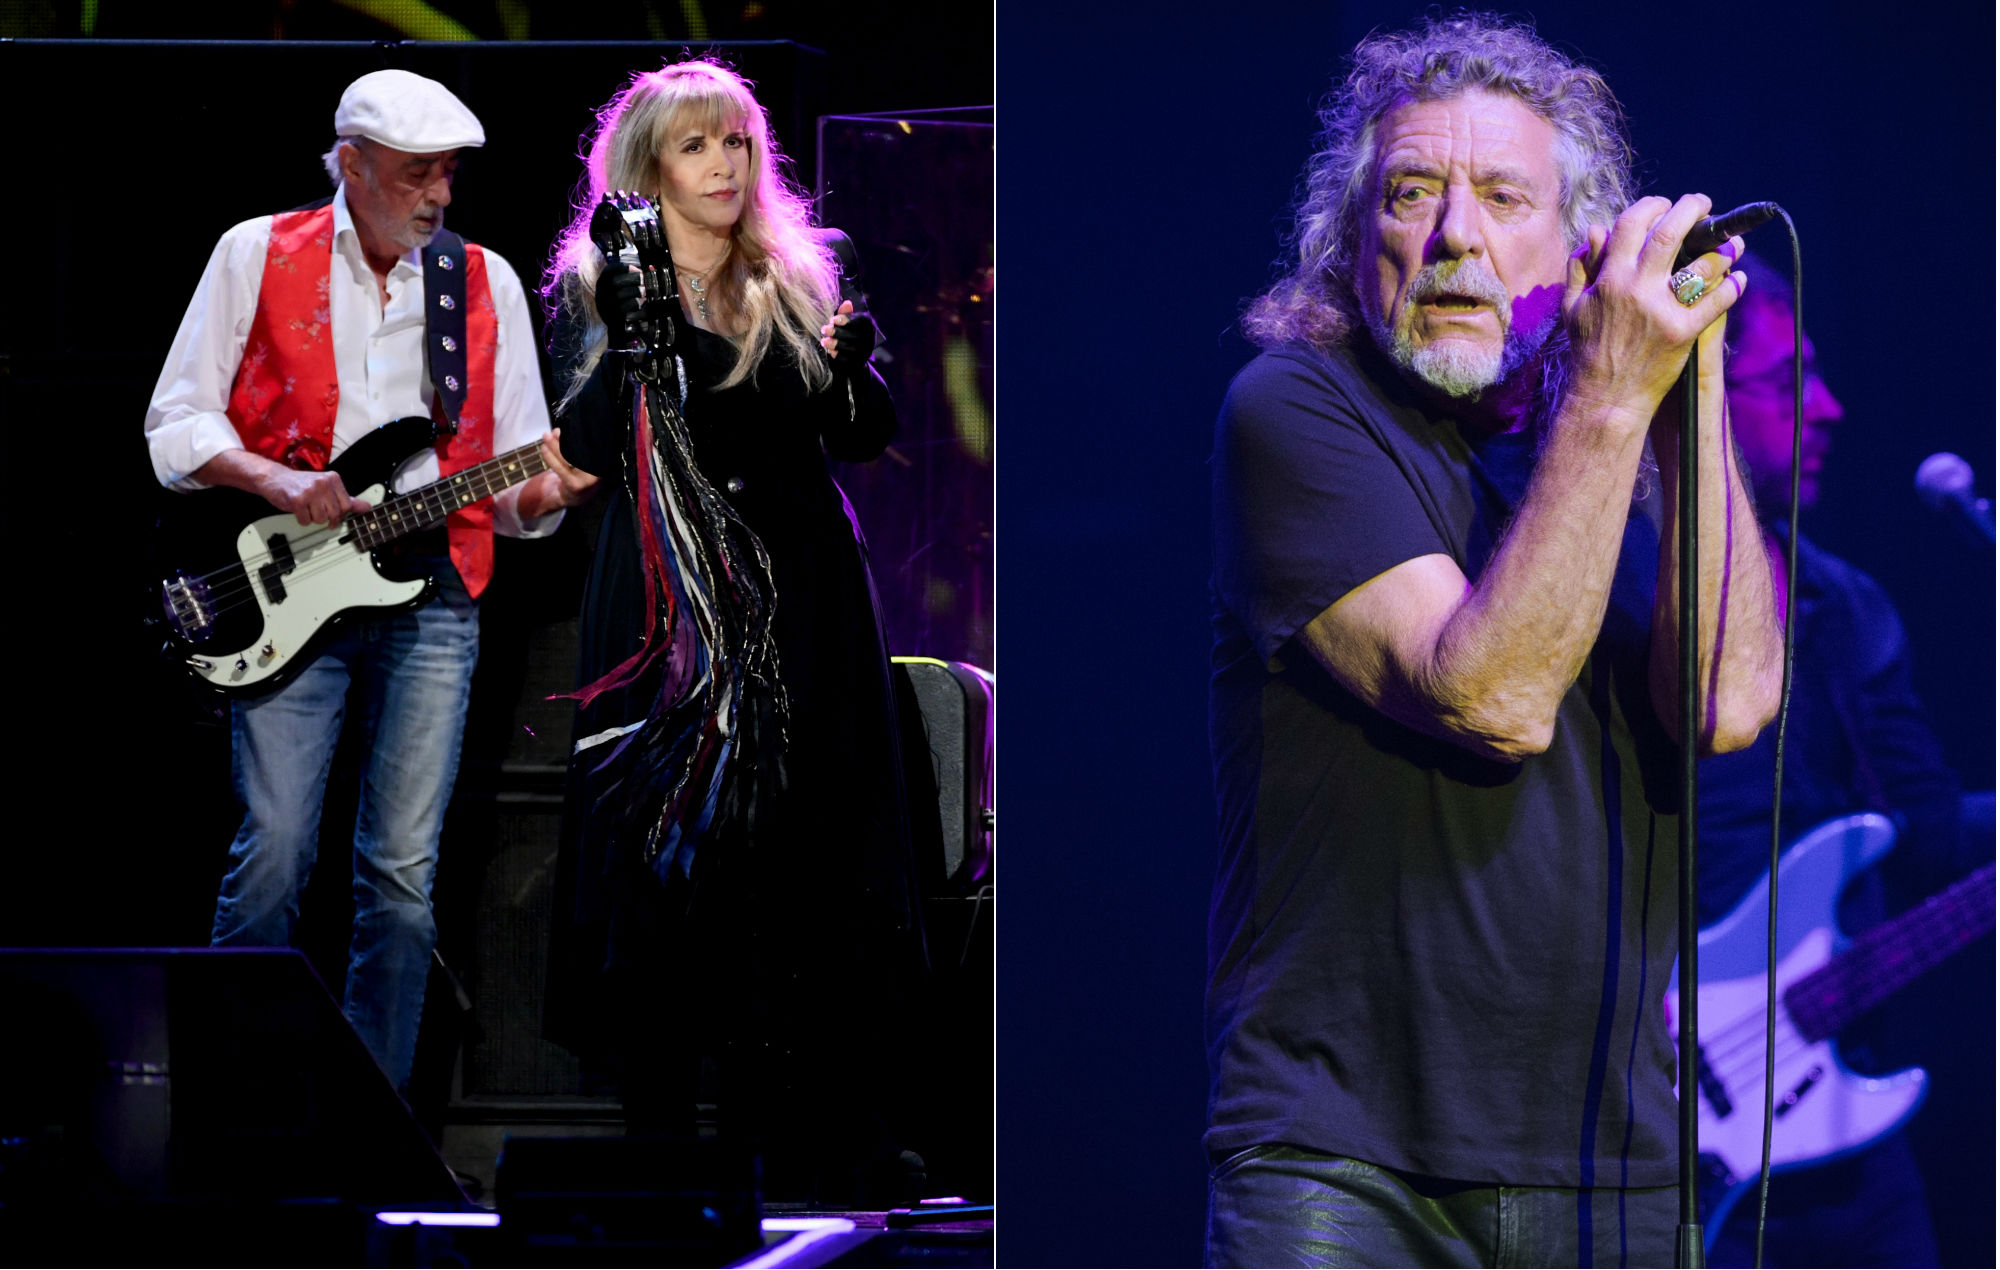 Fleetwood Mac and Led Zeppelin ruled out of playing Glastonbury 2020